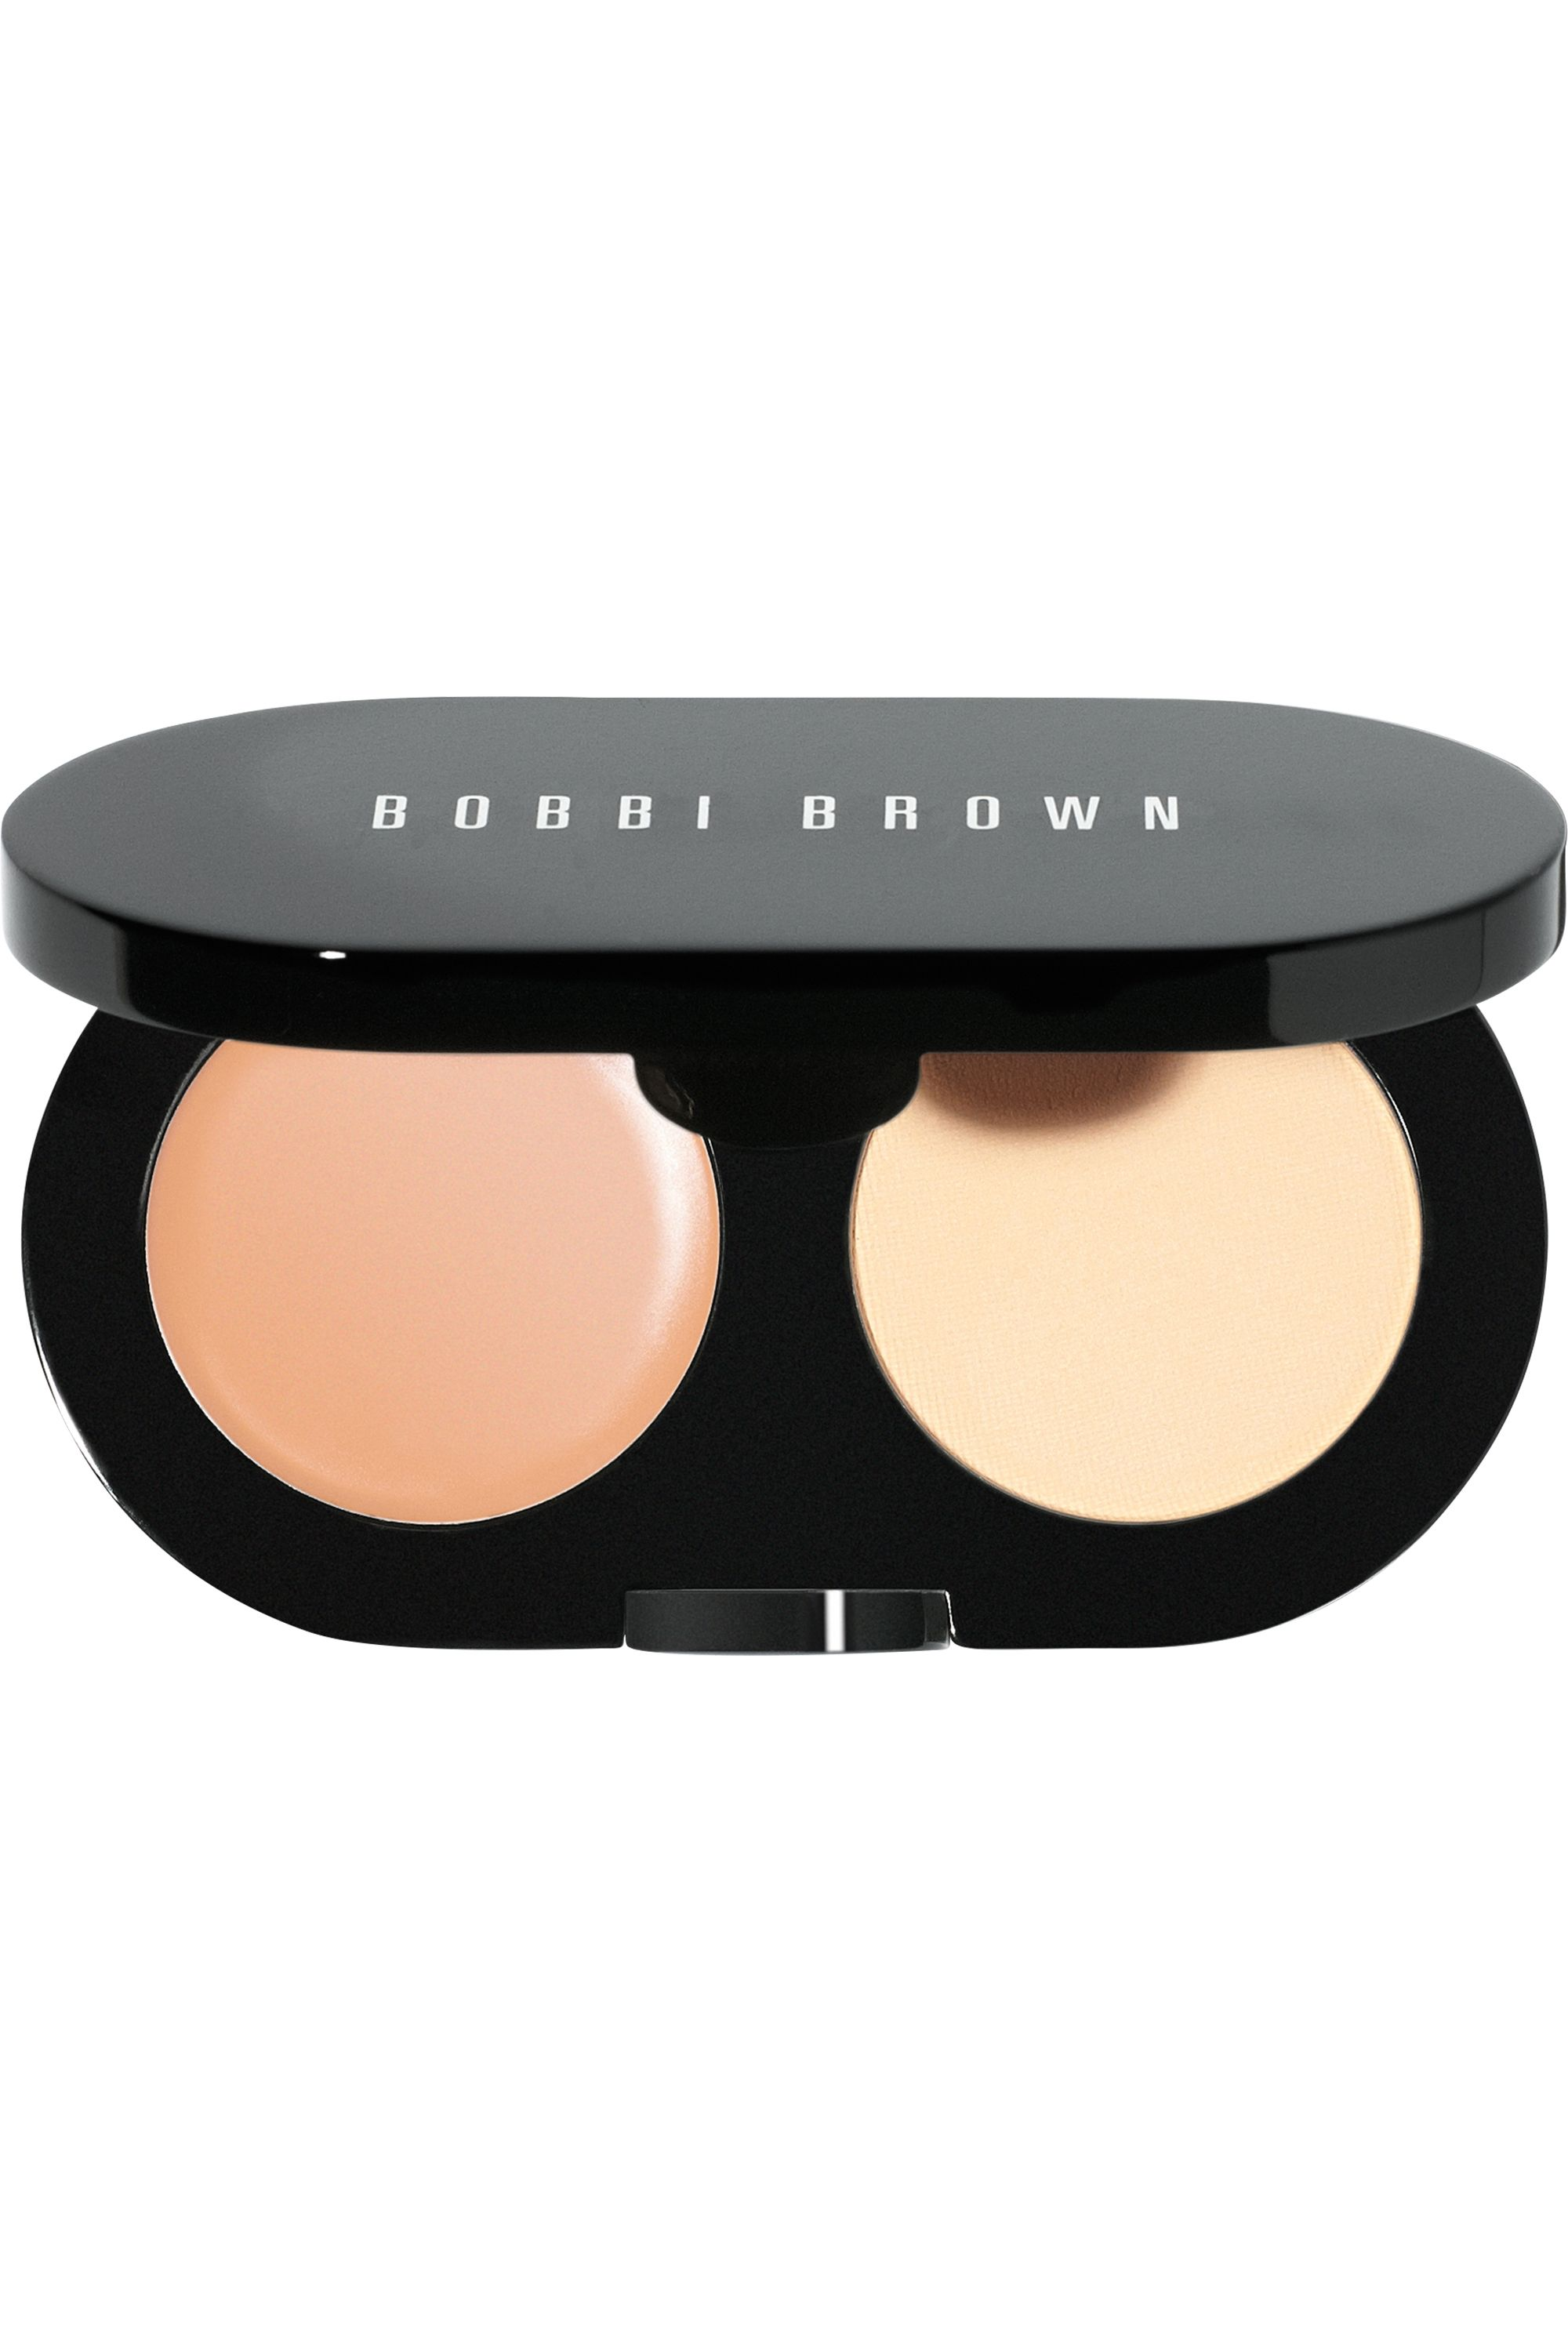 Blissim : Bobbi Brown - Kit anti-cernes Creamy Concealer Kit - Kit anti-cernes Creamy Concealer Kit